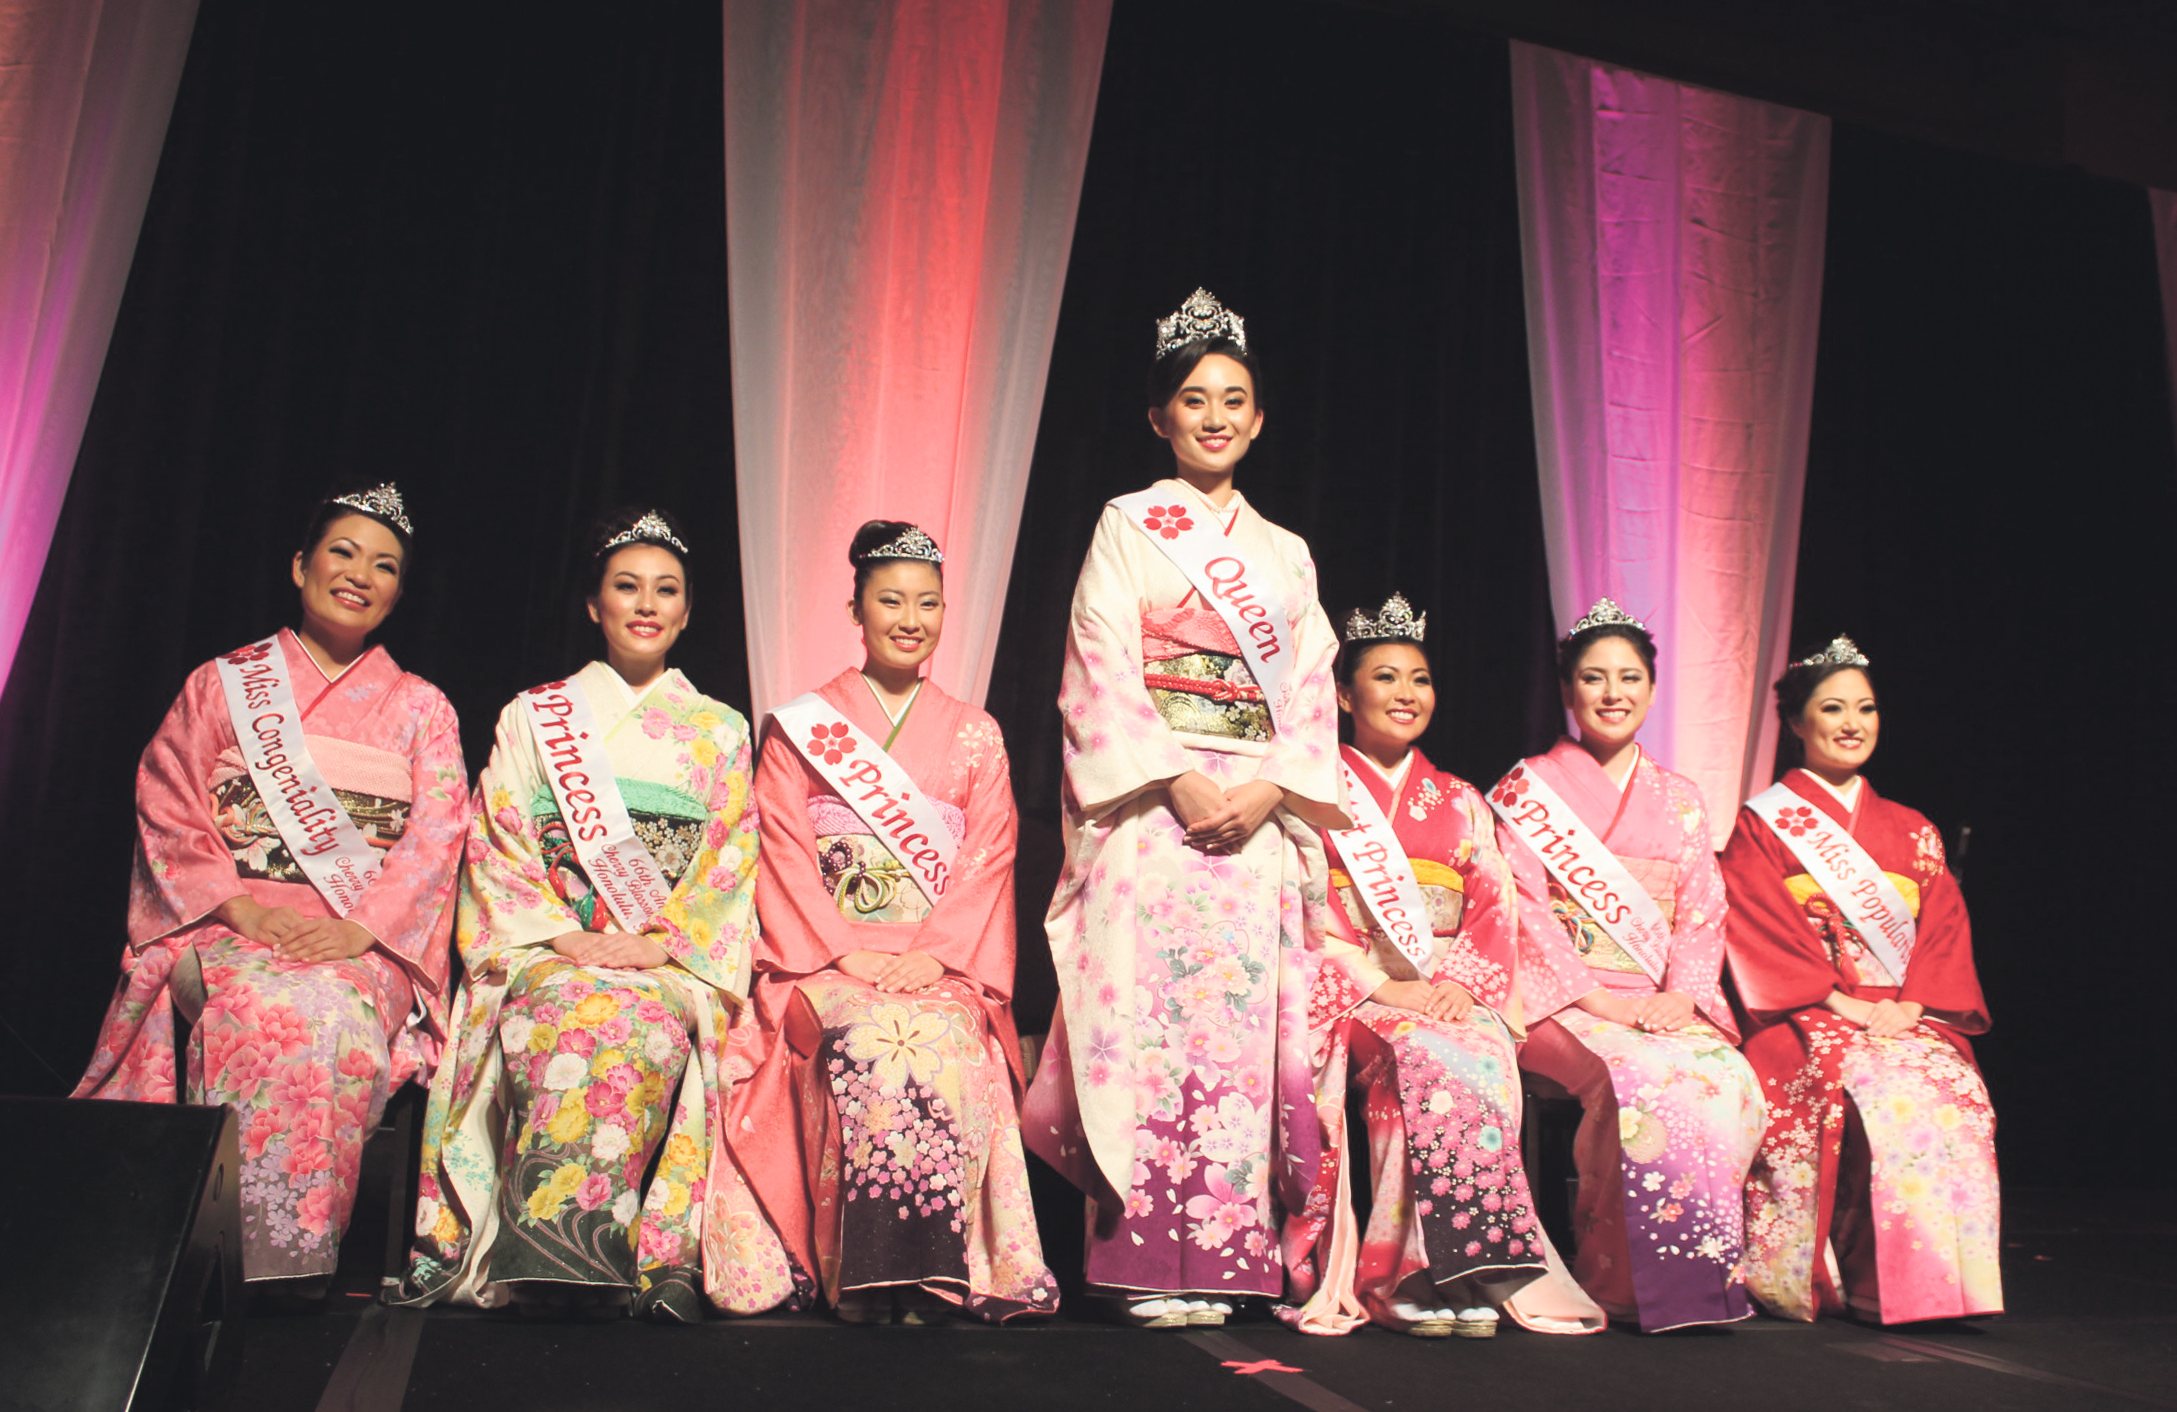 The 66th Cherry Blossom Festival Court, from left: Miss Congeniality Karly Kanehiro, Princess Kylie Hisatake, Princess Kaydi Hashima, Queen Melanie Carrié, First Princess Mika Nakashige, Princess Chelsea Briggs and Miss Popularity Sheby Meador. (Hawaii Hochi photos by Noriyoshi Kanaizumi)